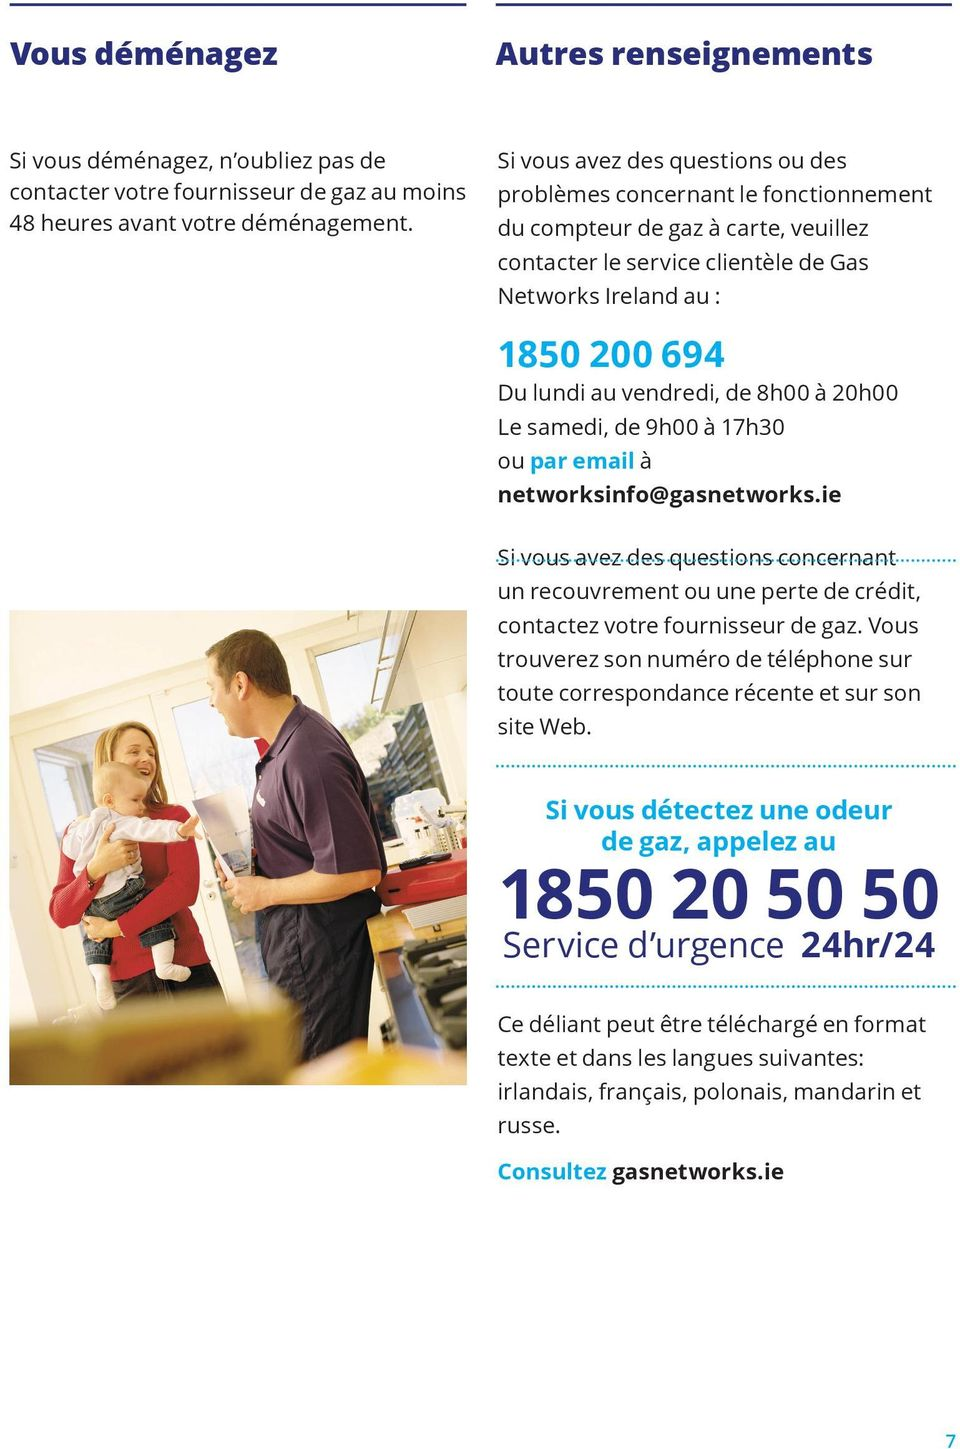 vendredi, de 8h00 à 20h00 Le samedi, de 9h00 à 17h30 ou par email à networksinfo@gasnetworks.